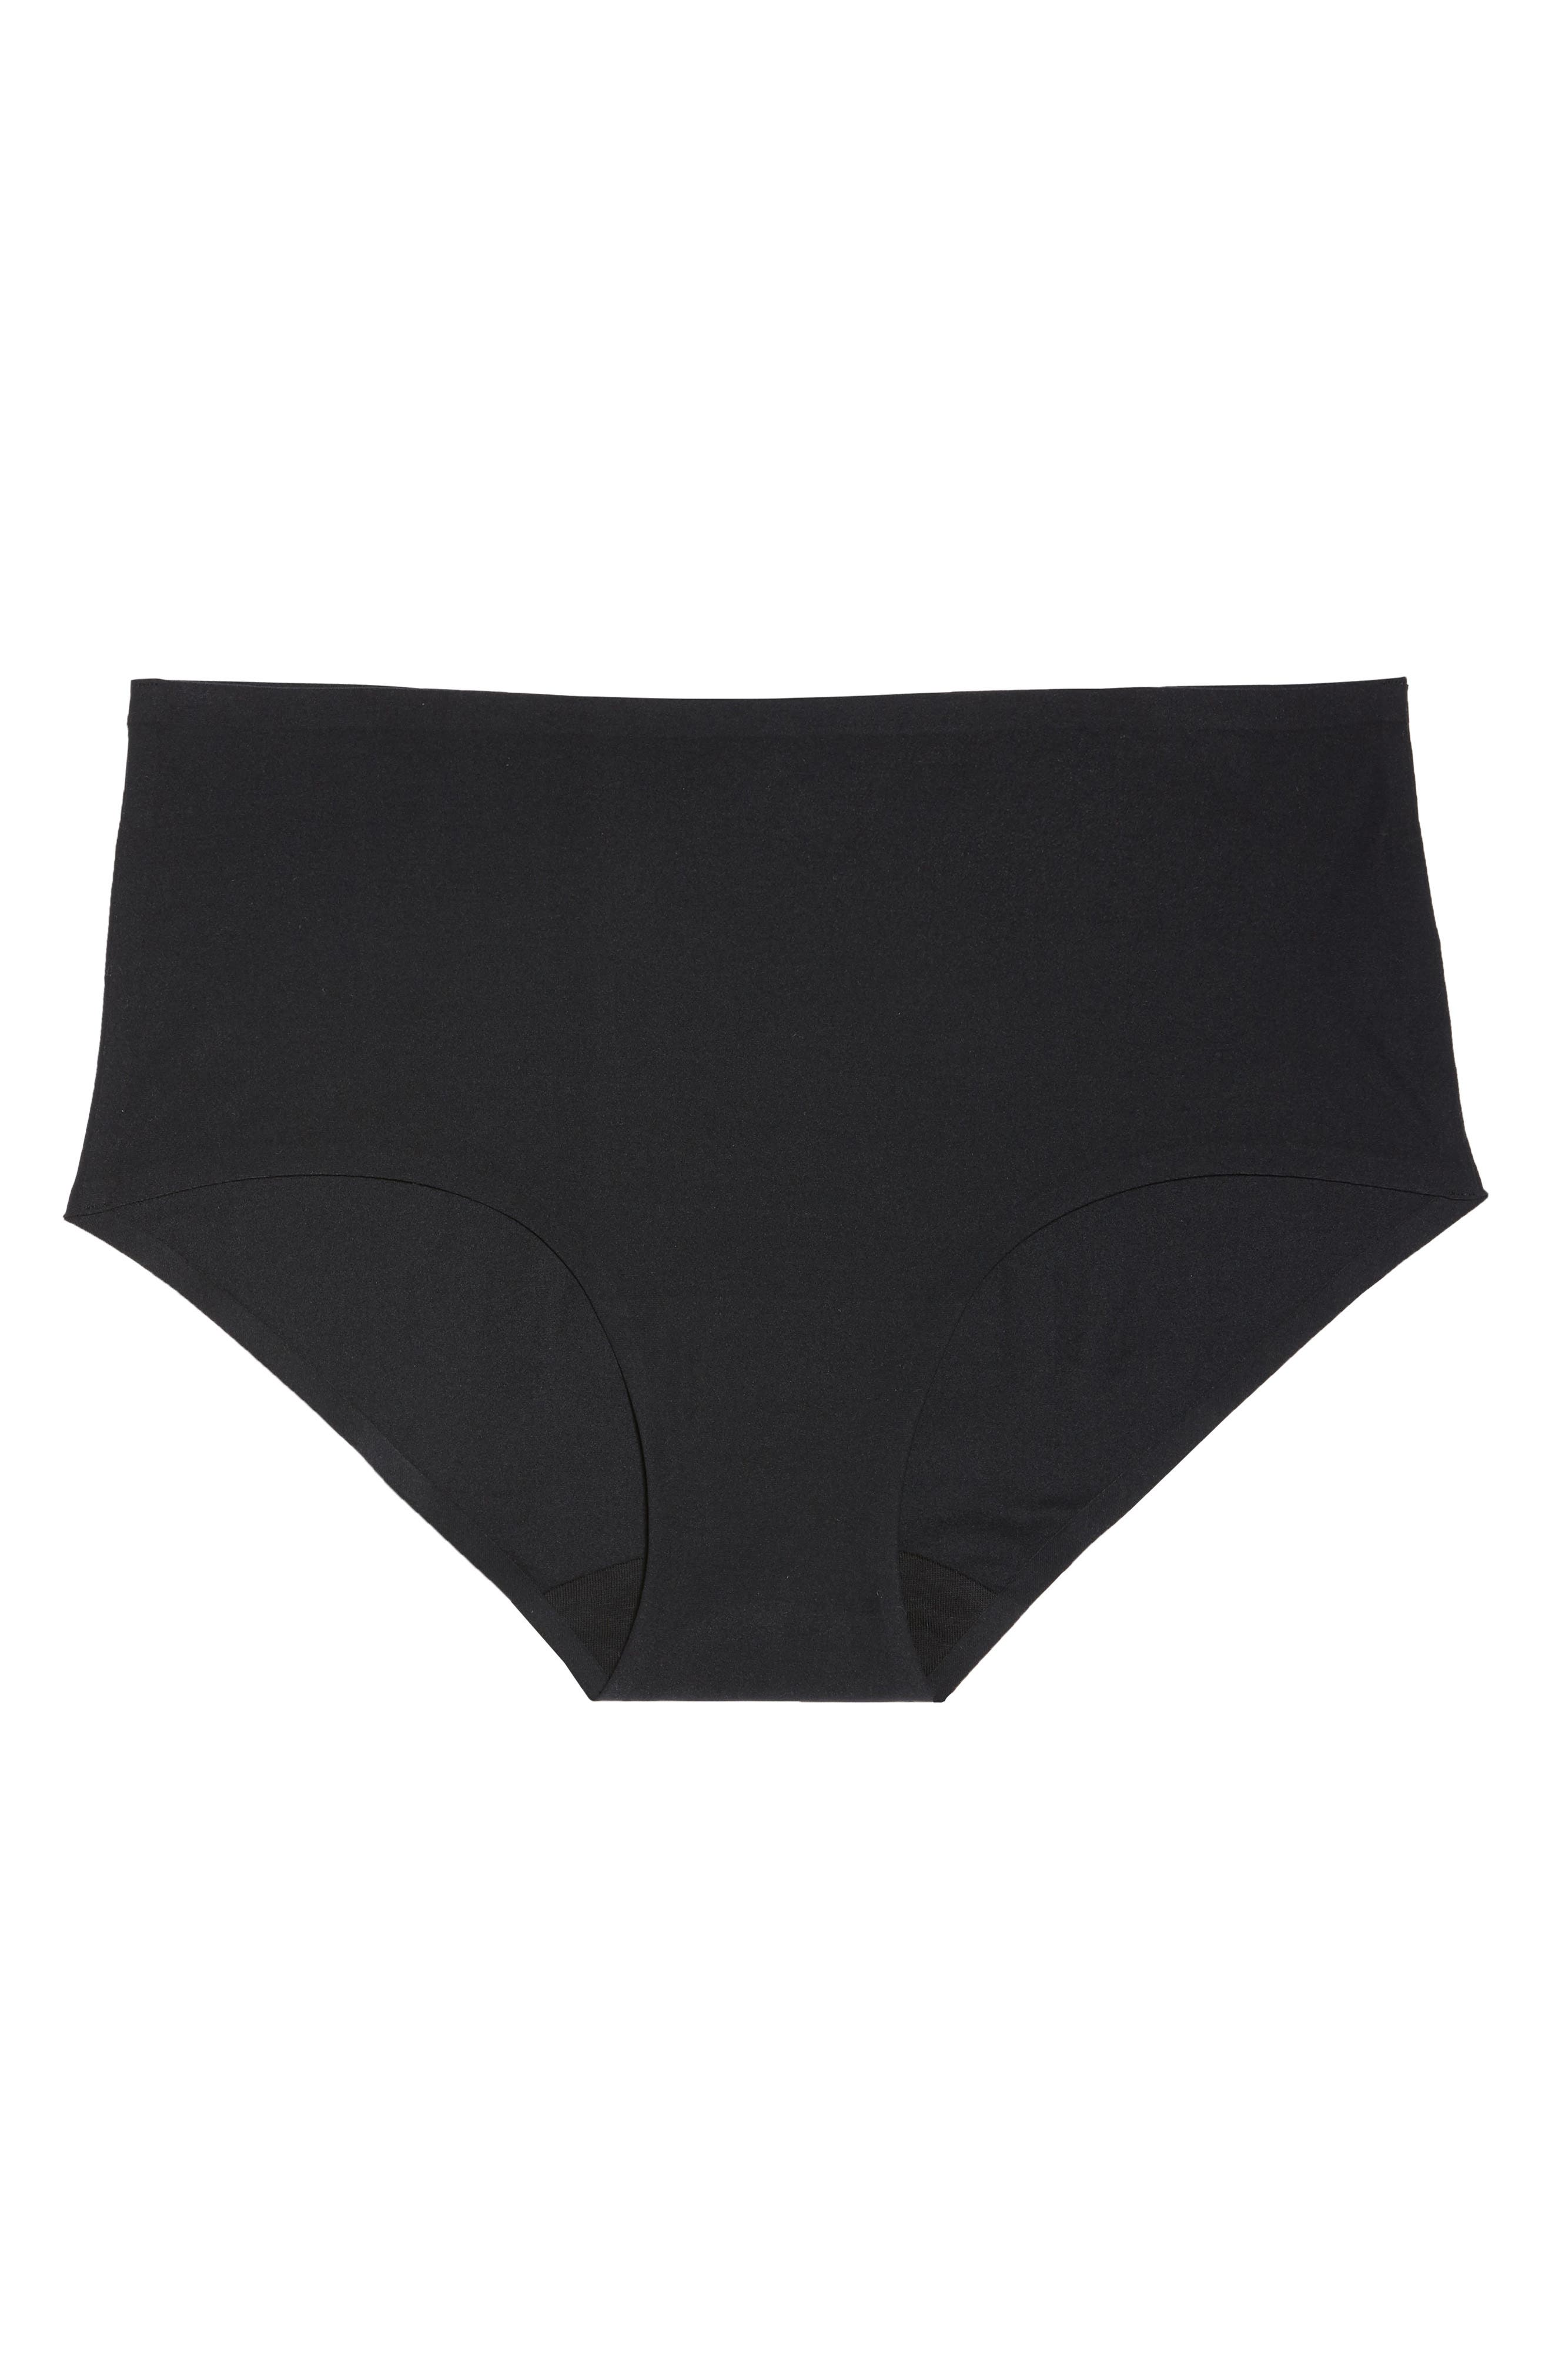 Soft Stretch Seamless Hipster Panties,                             Alternate thumbnail 6, color,                             BLACK